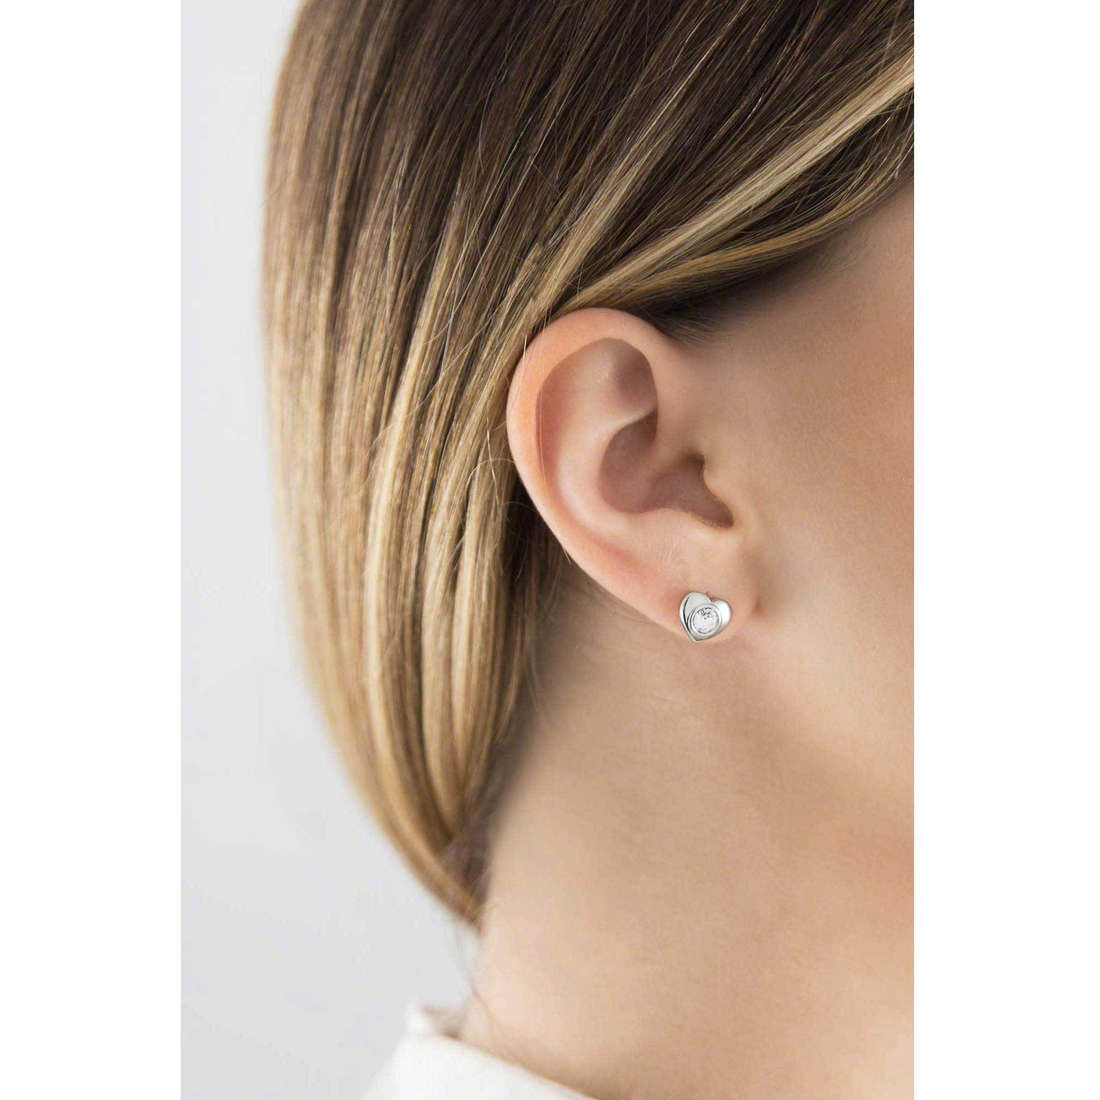 Brosway boucles d'oreille Epsilon femme BEO23 photo wearing